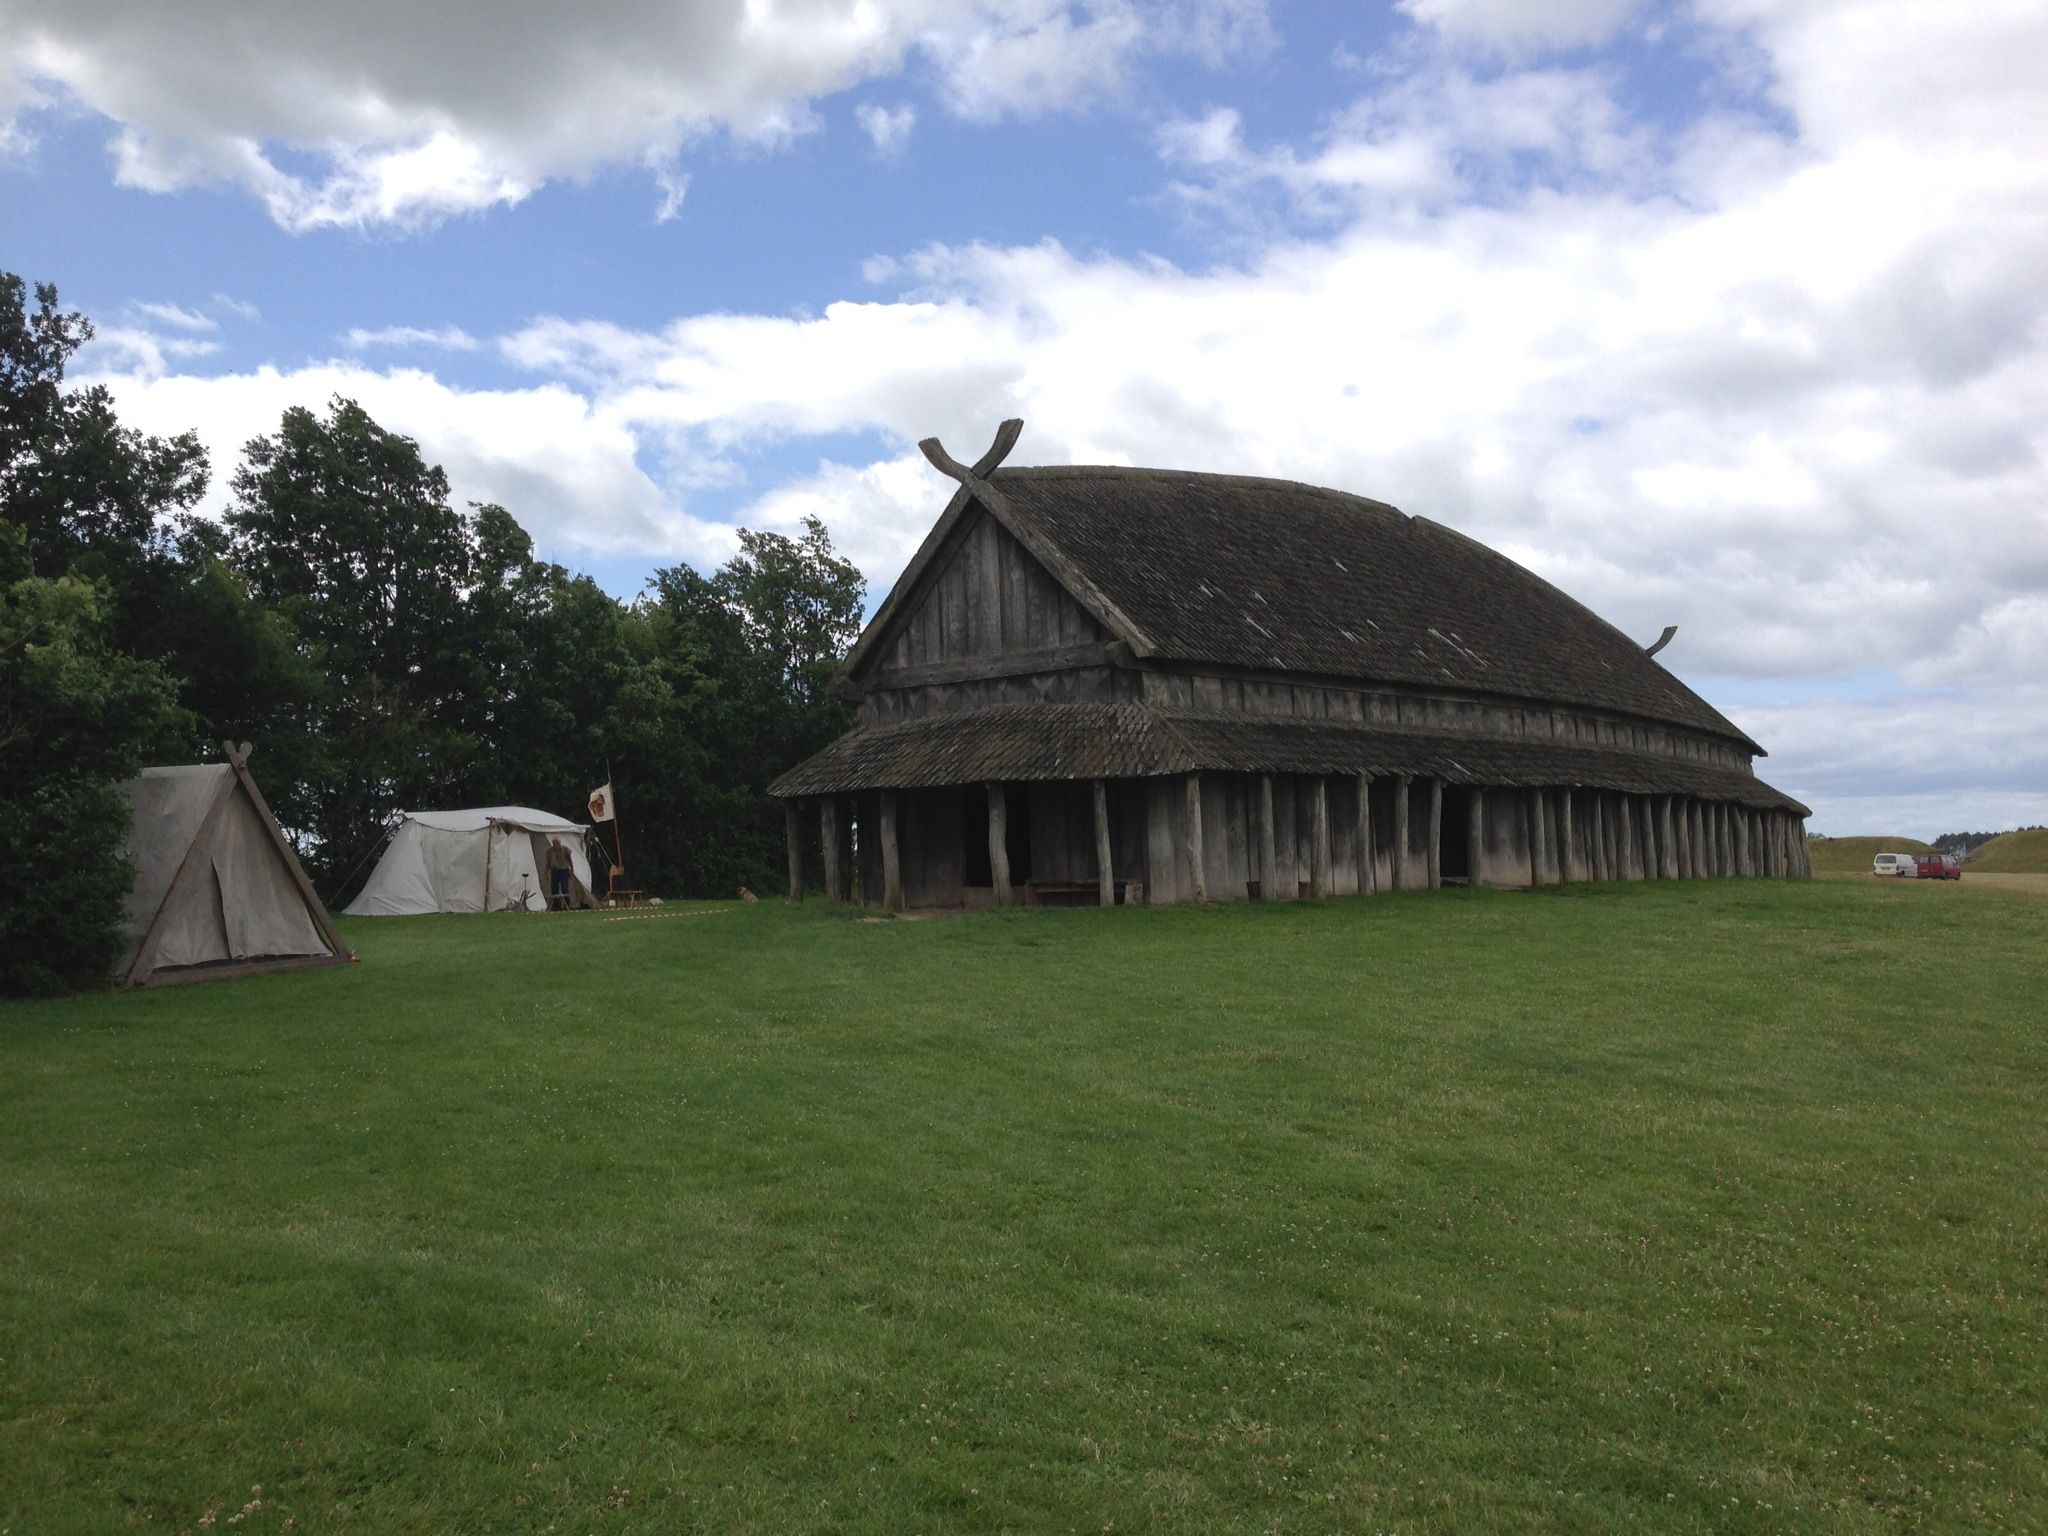 Trelleborg is the site of a great Viking Fortress.